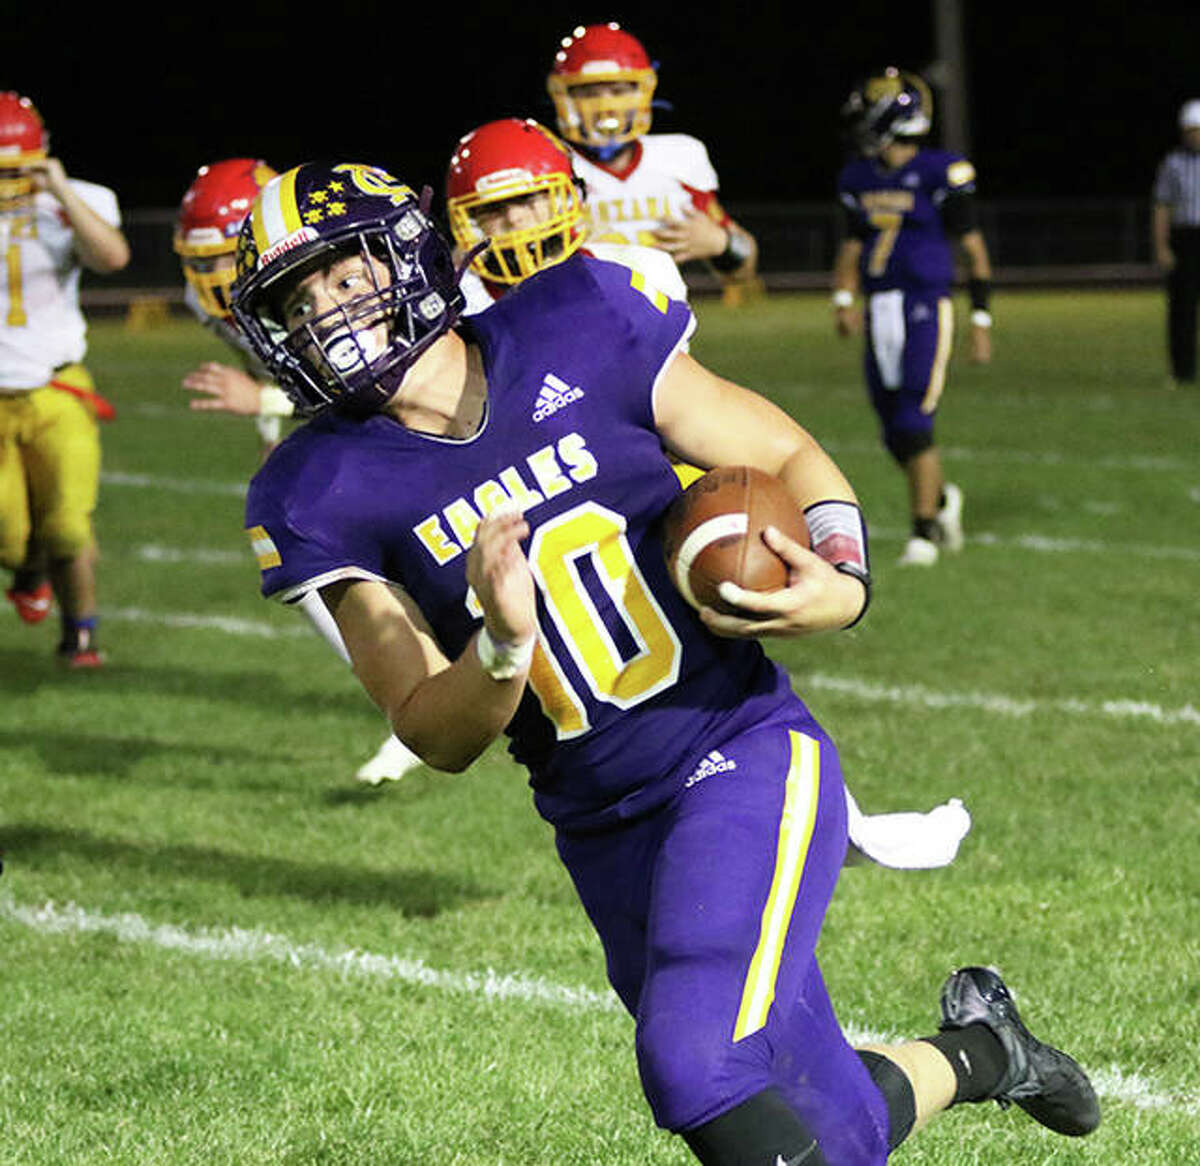 CM's Nick Brousseau (10) picks up yardage in a game against Roxana on Sept. 10 in Bethalto. The Eagles are on the road Friday to play rival Jersey in a MVC game in Jerseyville.